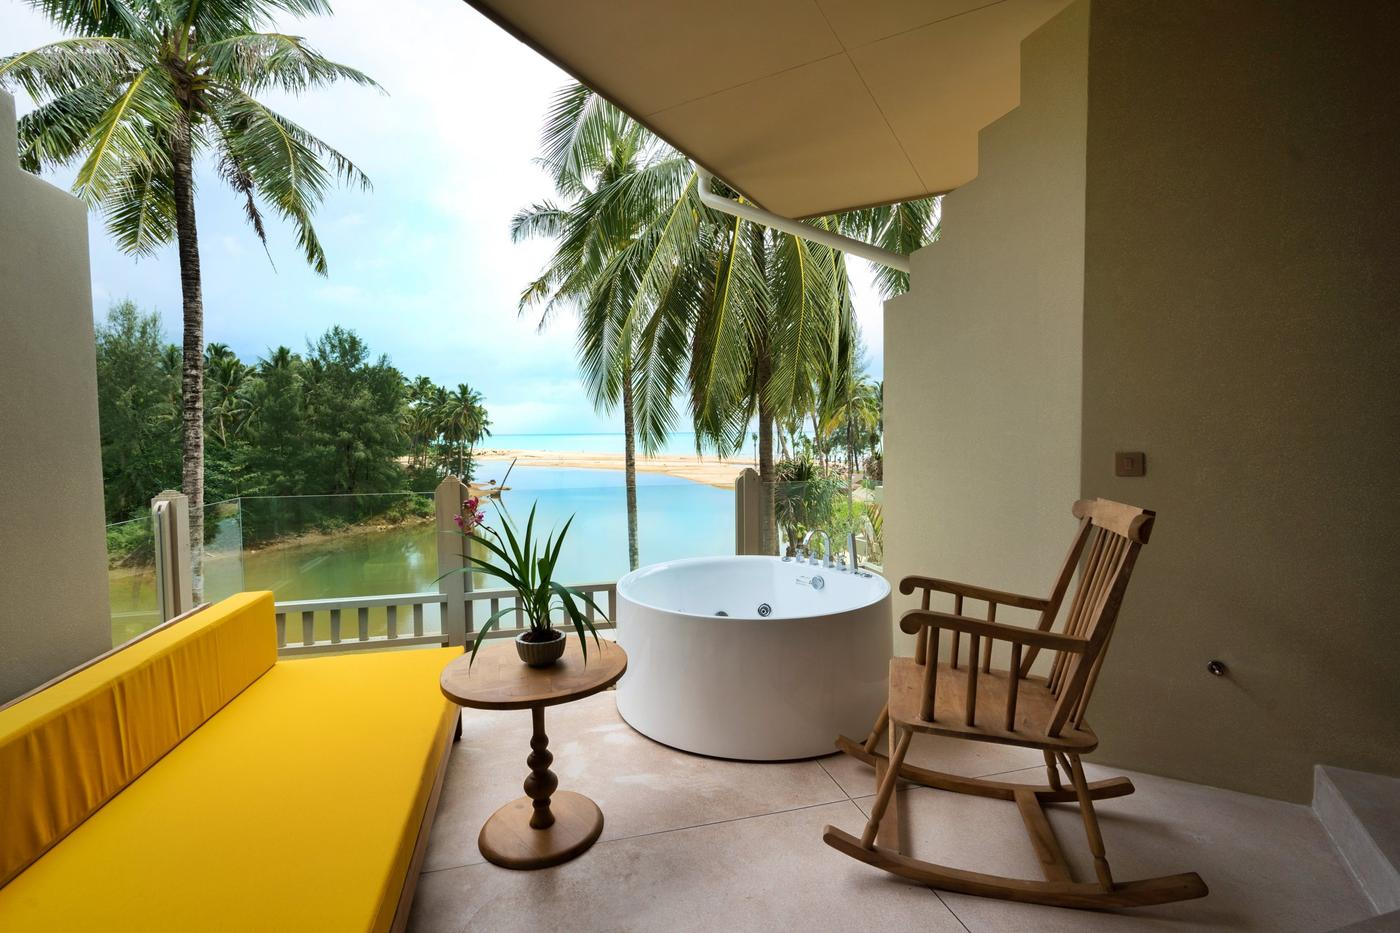 Seaside Junior Suite, Devasom Khao Lak